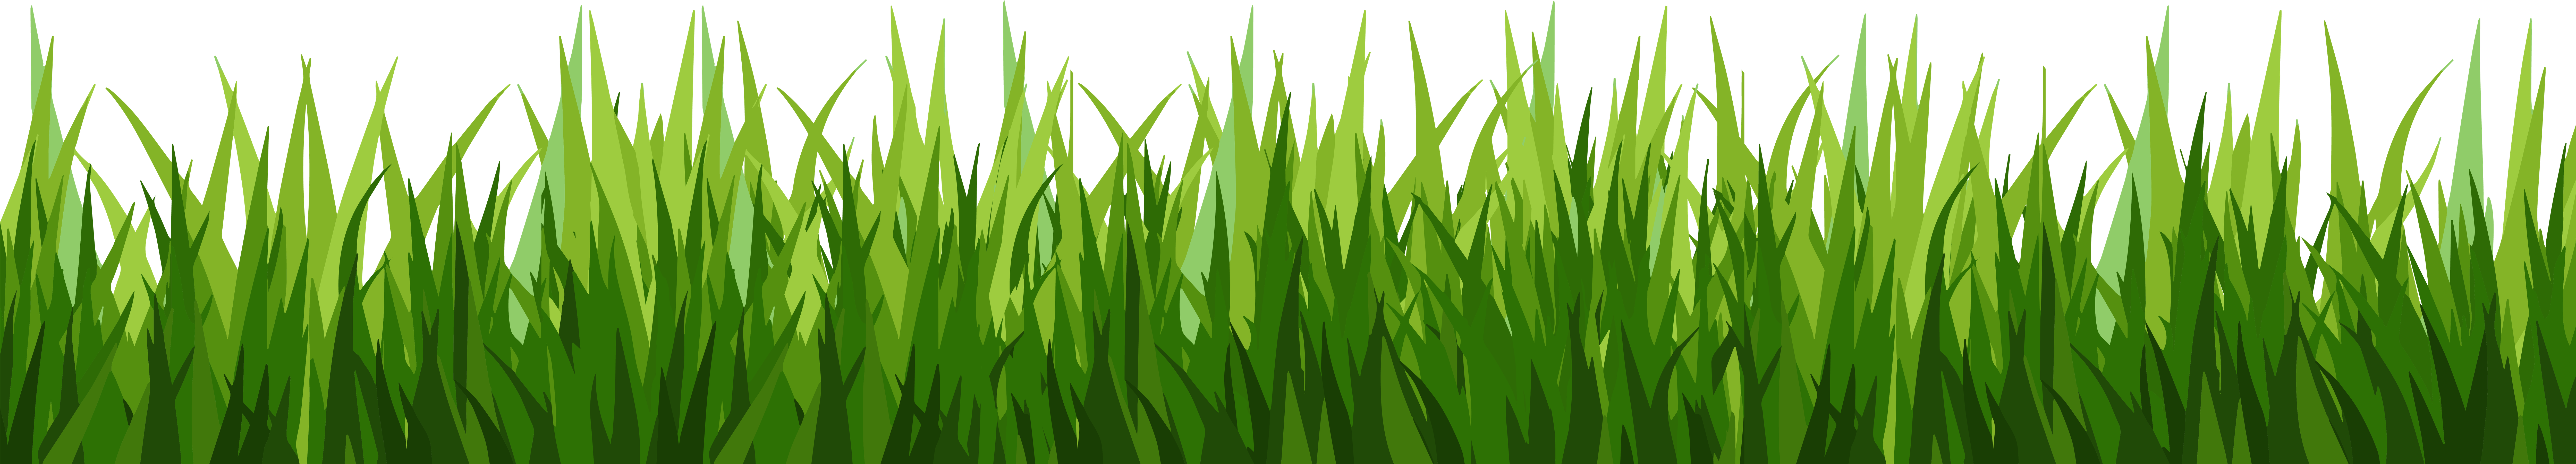 Clipart grass clear background. Free transparent download clip